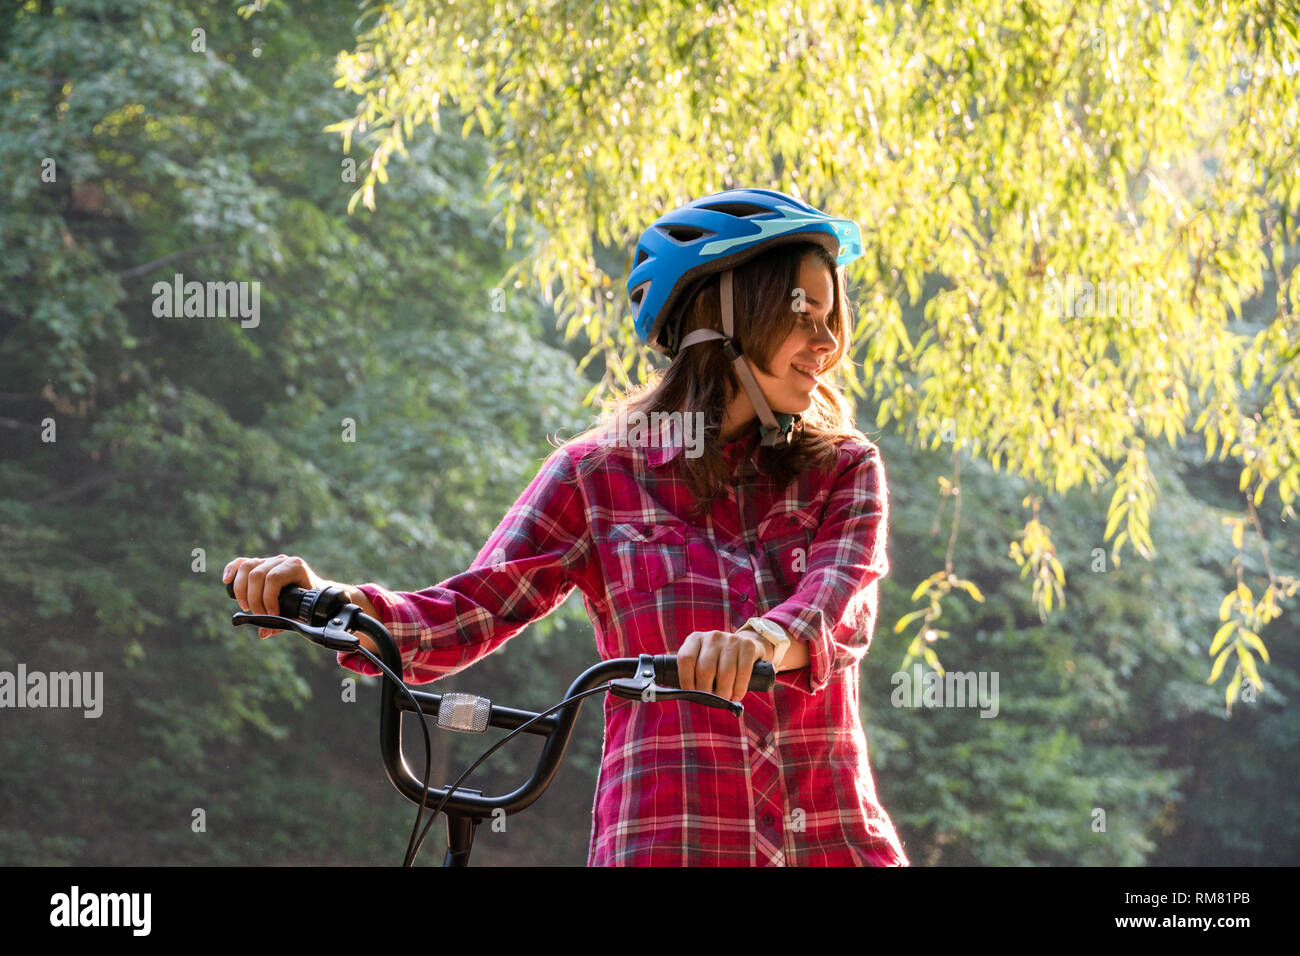 Subject Ecological Mode Of Transport Bicycle Beautiful Young Kasazy Woman Wearing A Blue Helmet And Long Hair Poses Standing Next To An Orange Colore Stock Photo Alamy